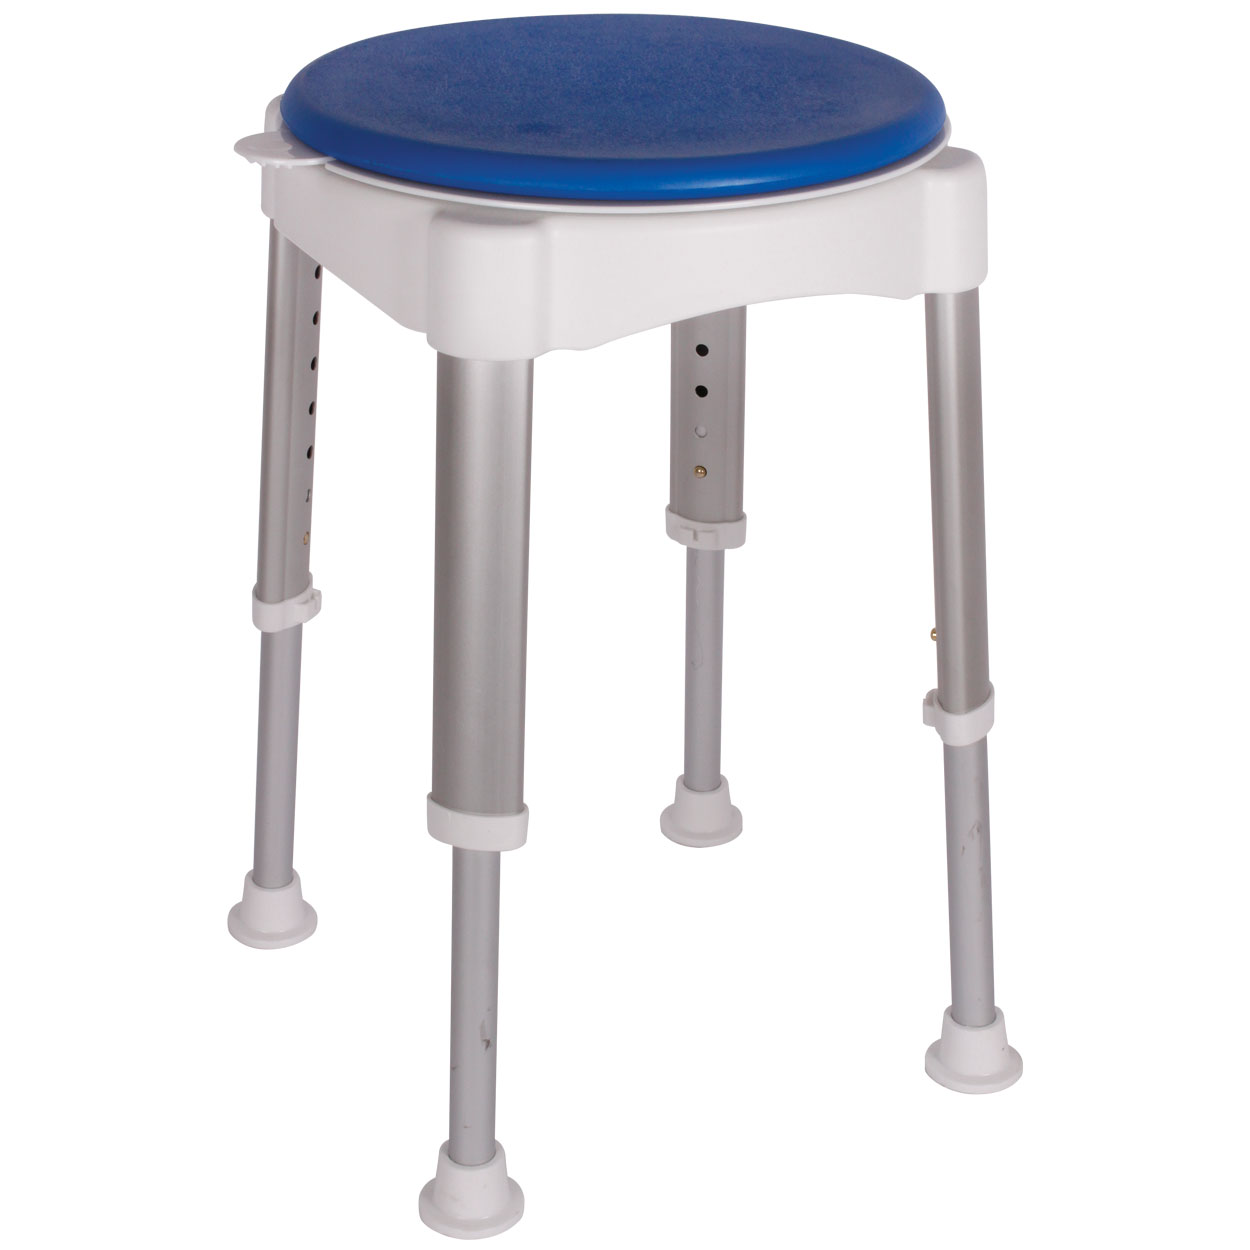 Rotating Bathroom Seat | Boxing Day Event | Coopers Of Stortford